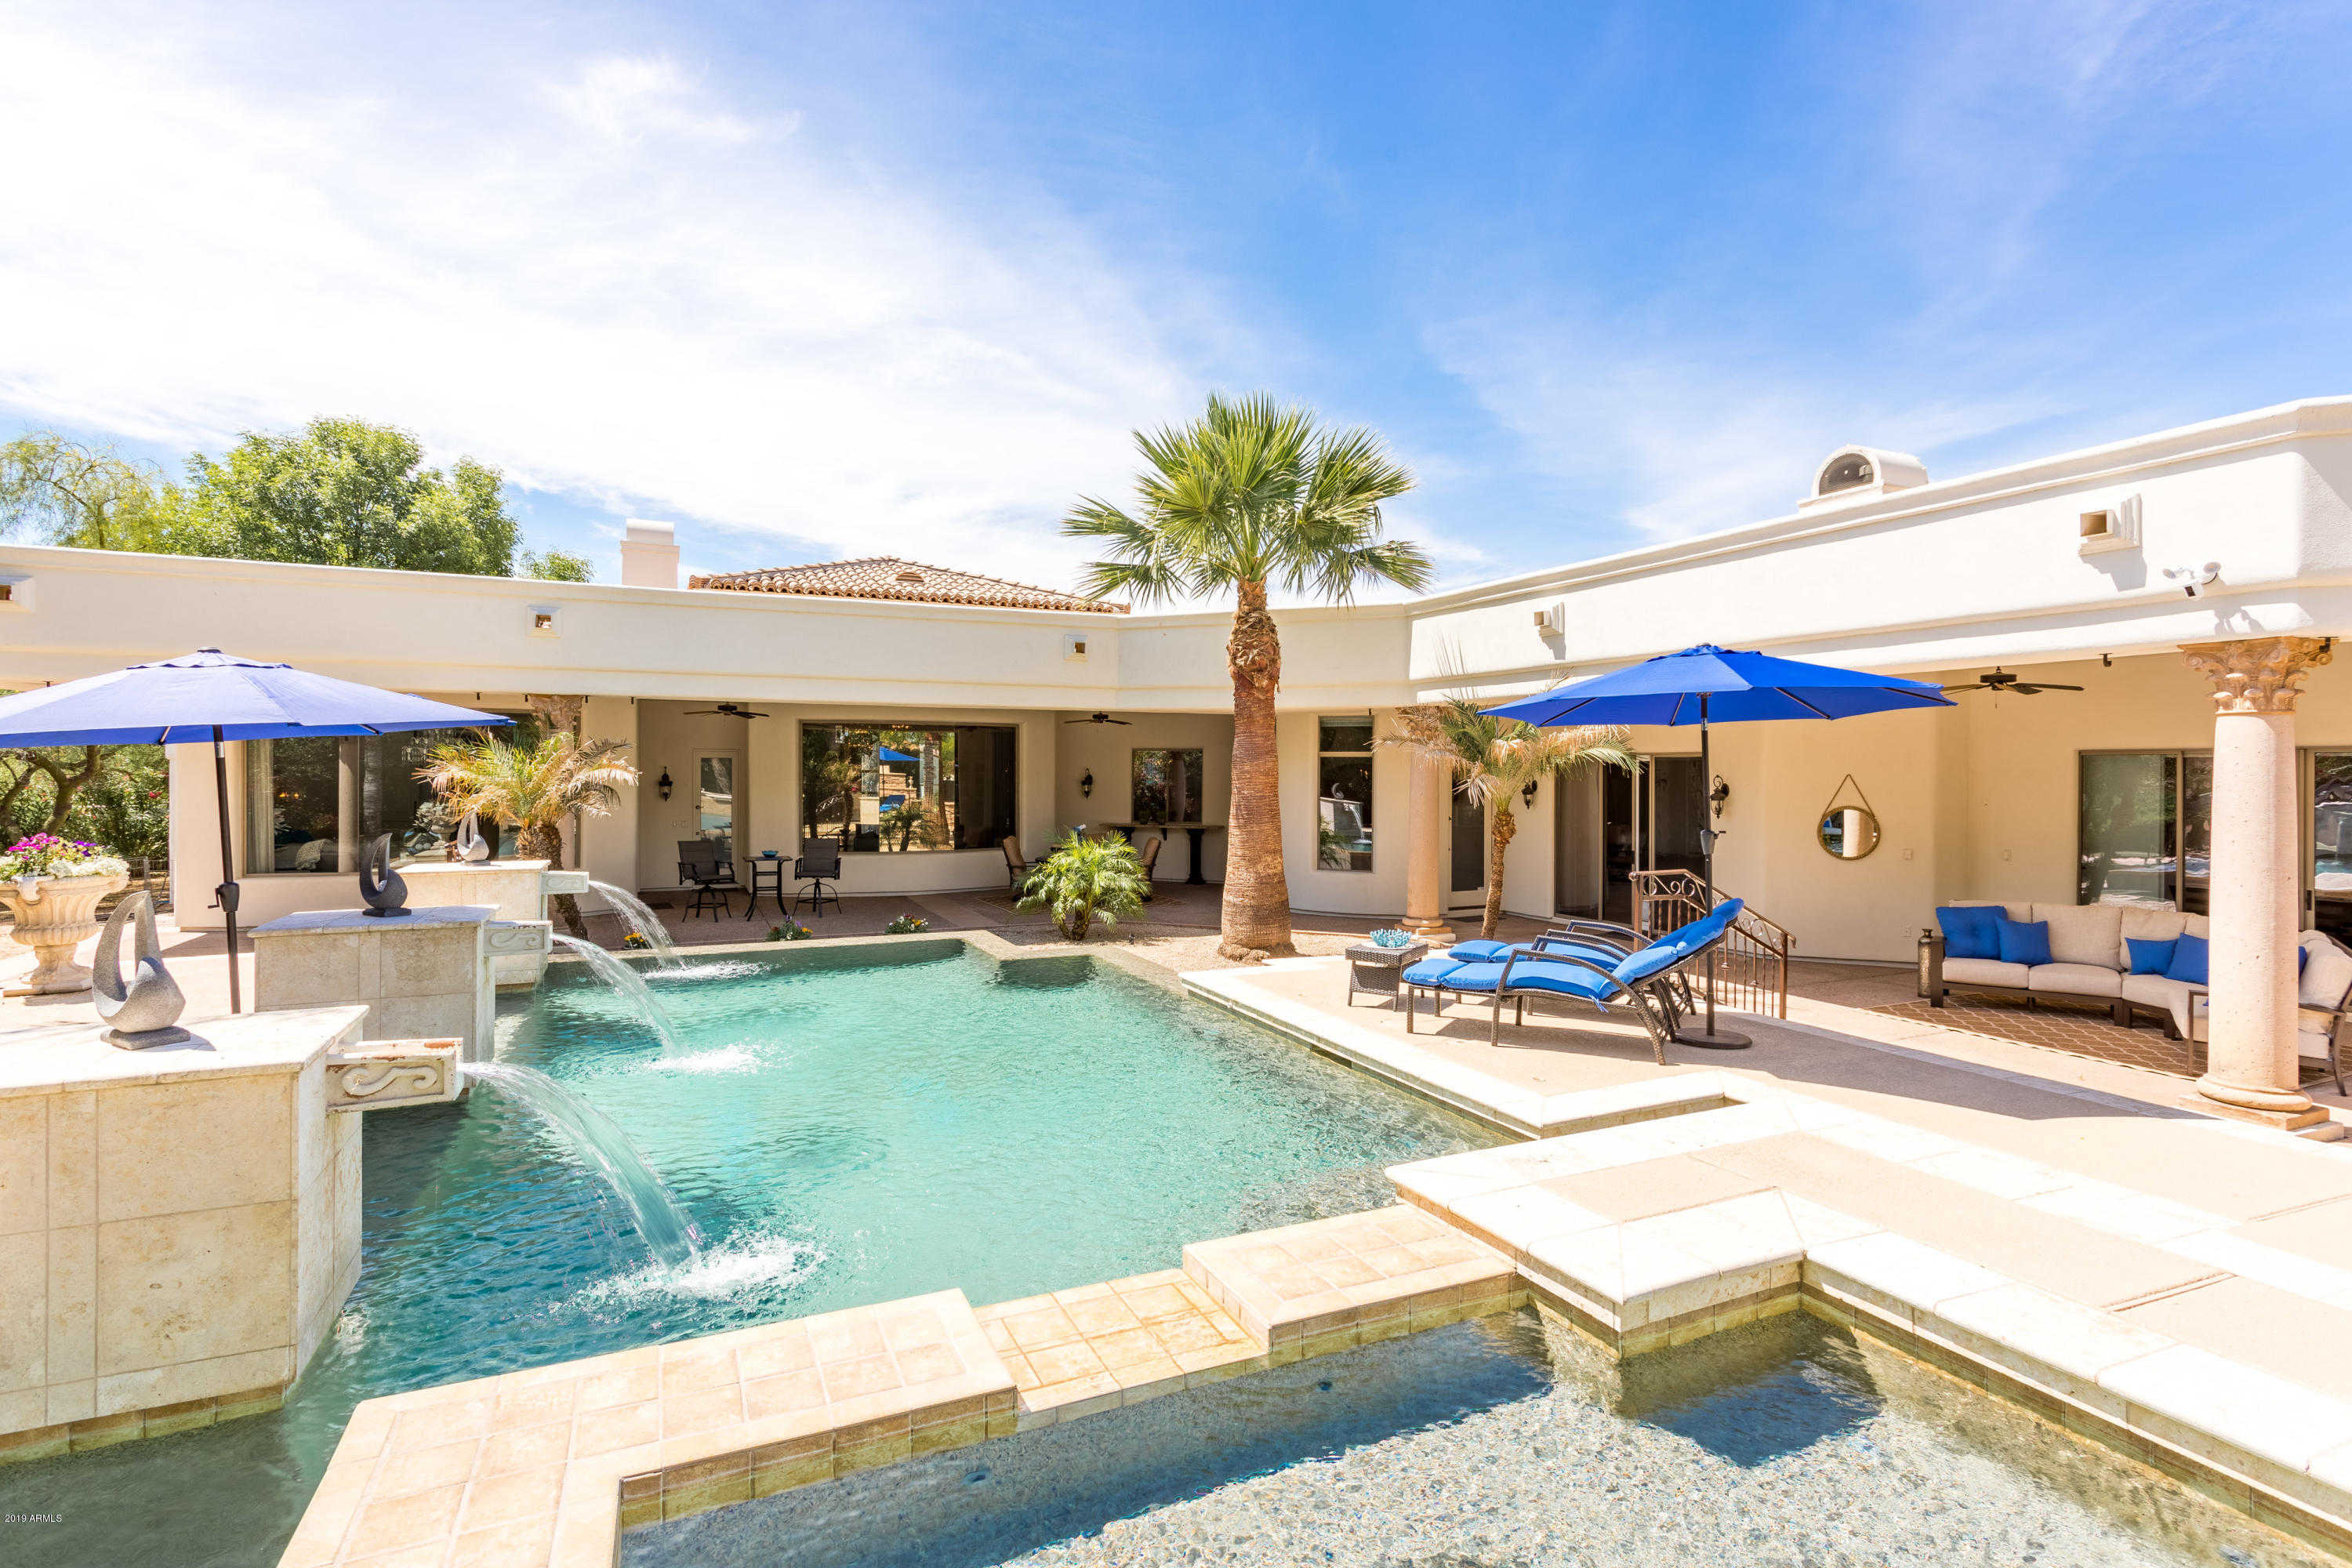 $2,599,000 - 6Br/7Ba - Home for Sale in Rancho Sunny Vale Lots 1-8, 27-34, Paradise Valley